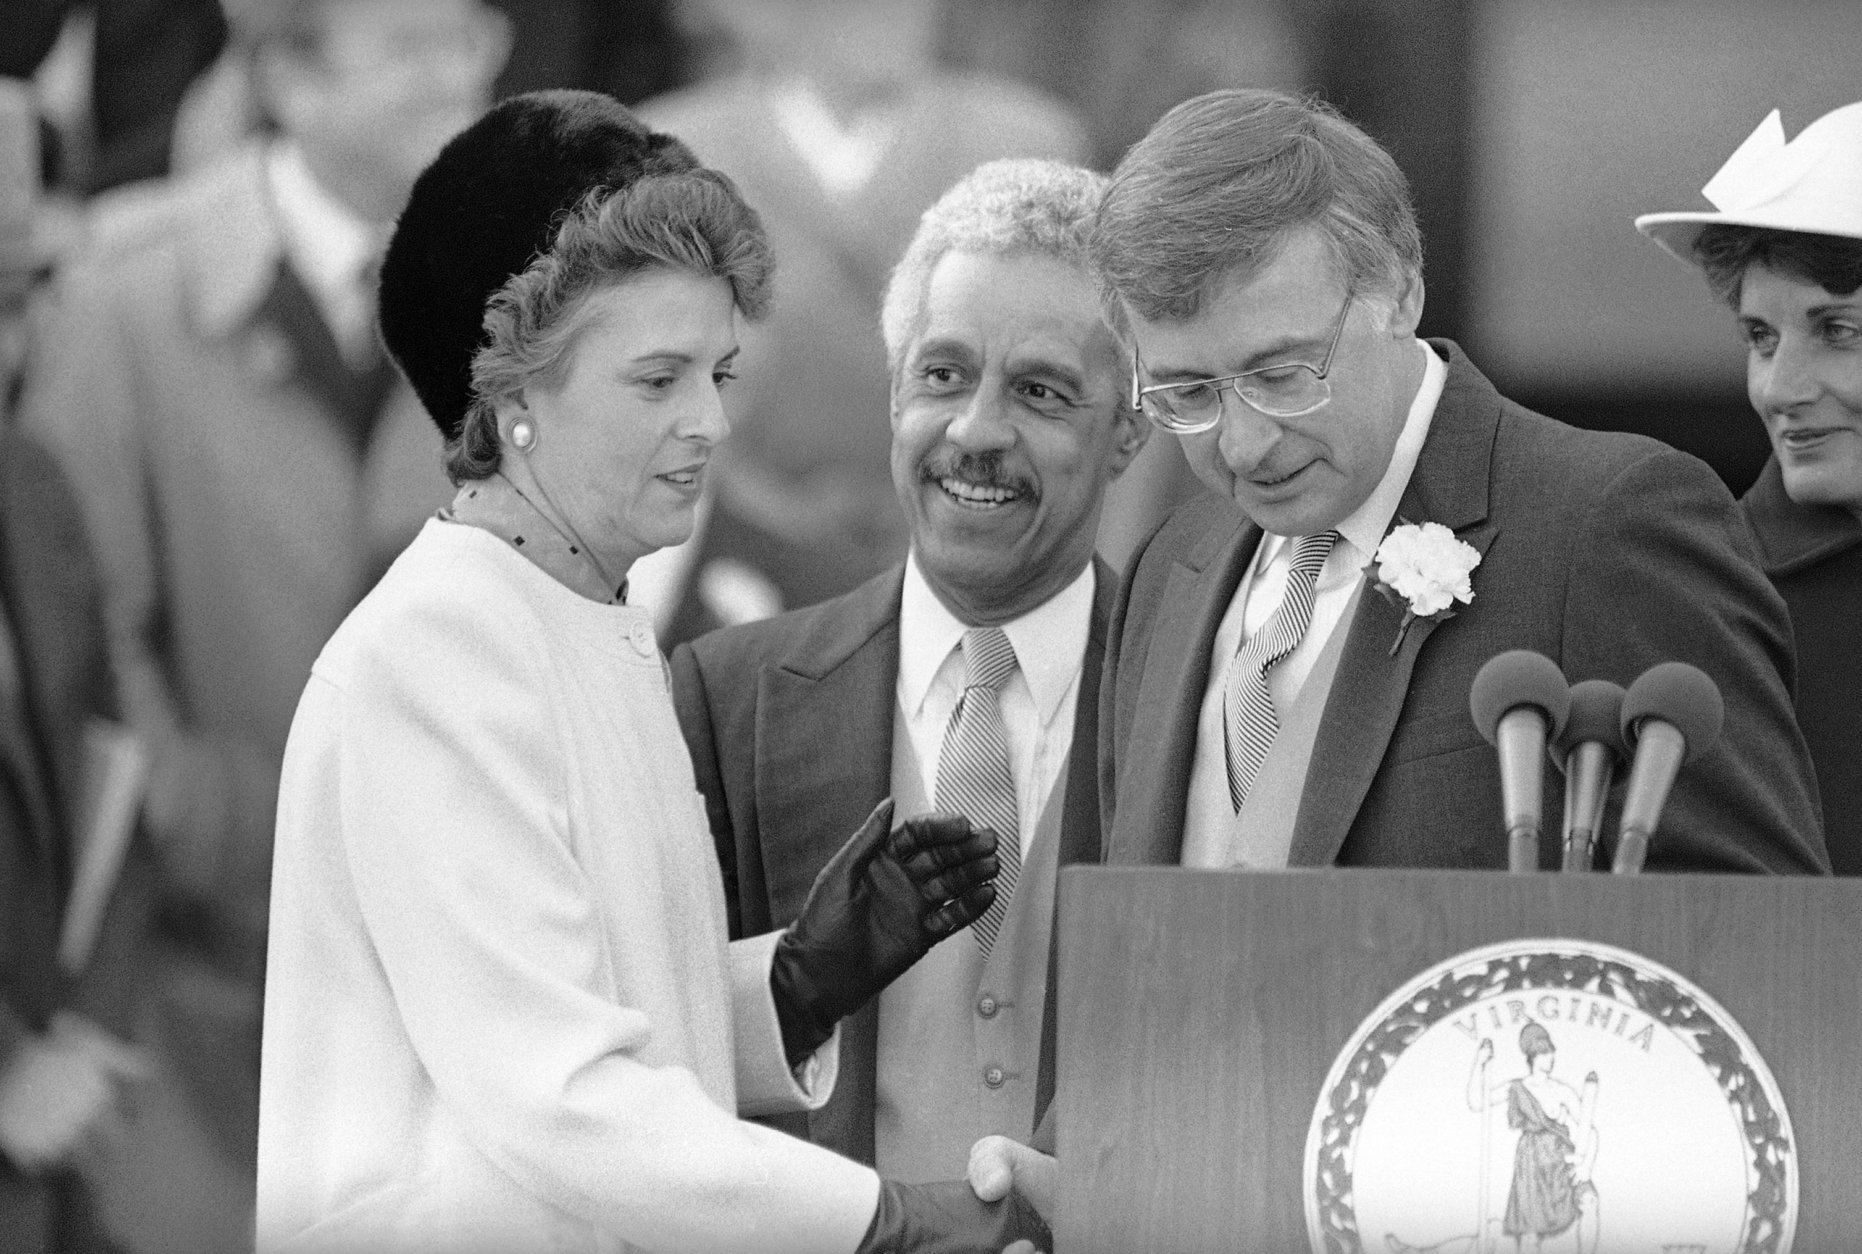 Virginia Governor Gerald Baliles, right, share the podium with Virginia Lt. Governor L. Douglas Wilder, center, and Attorney General Mary Sue Terry, left, after the three were sworn in at the Capitol in Richmond, Virginia on Jan. 11, 1986. (AP Photo/Steve Helber)